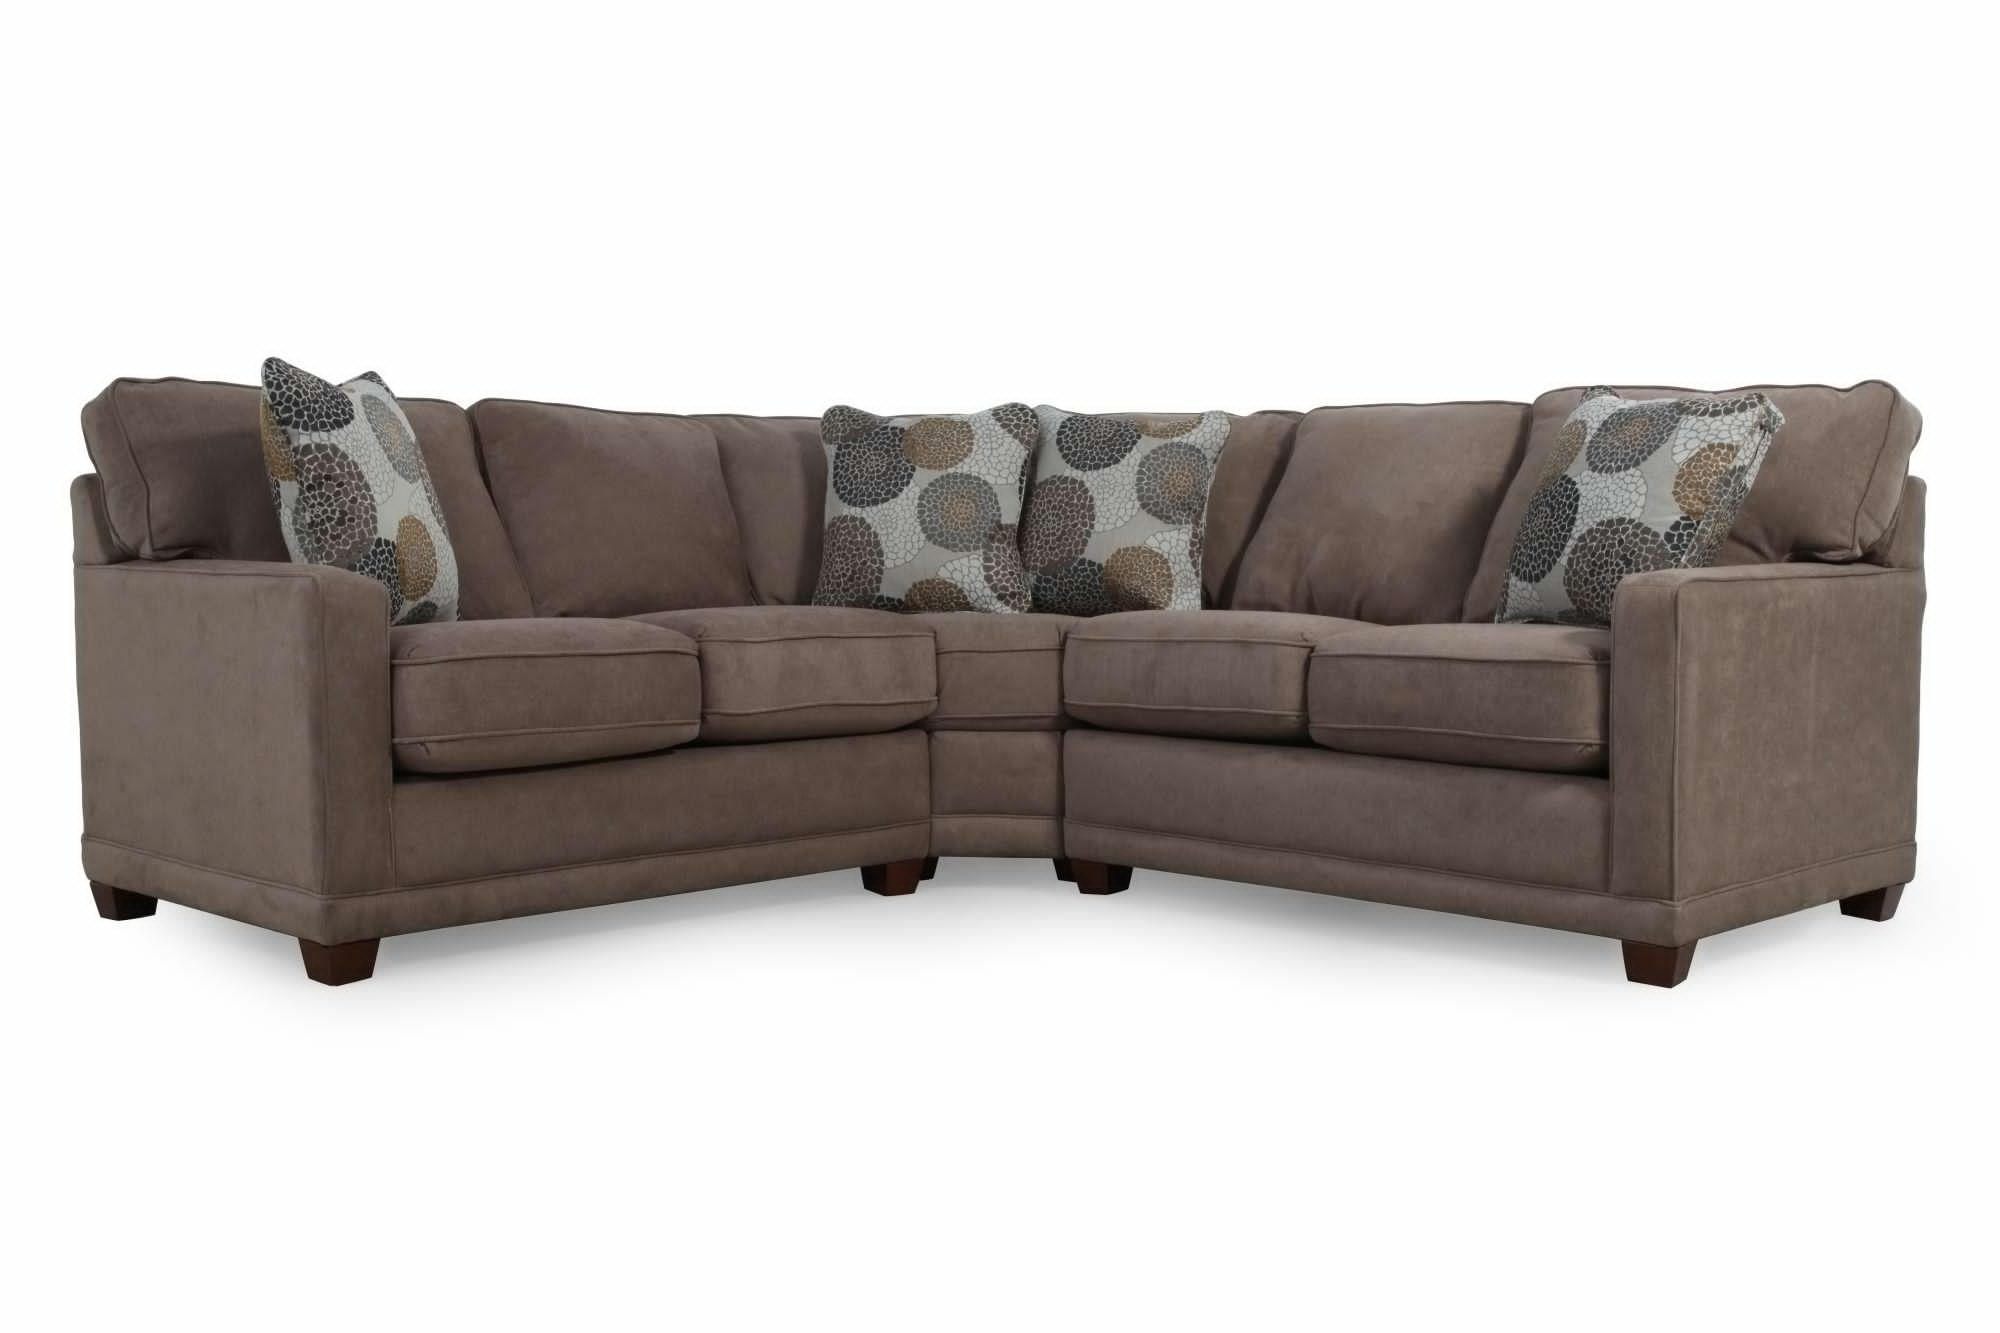 Preferred Lazyboy Sectional Sofas For Sectional Sofa Design: Lazy Boy Sectional Sofa Sale James (View 5 of 20)